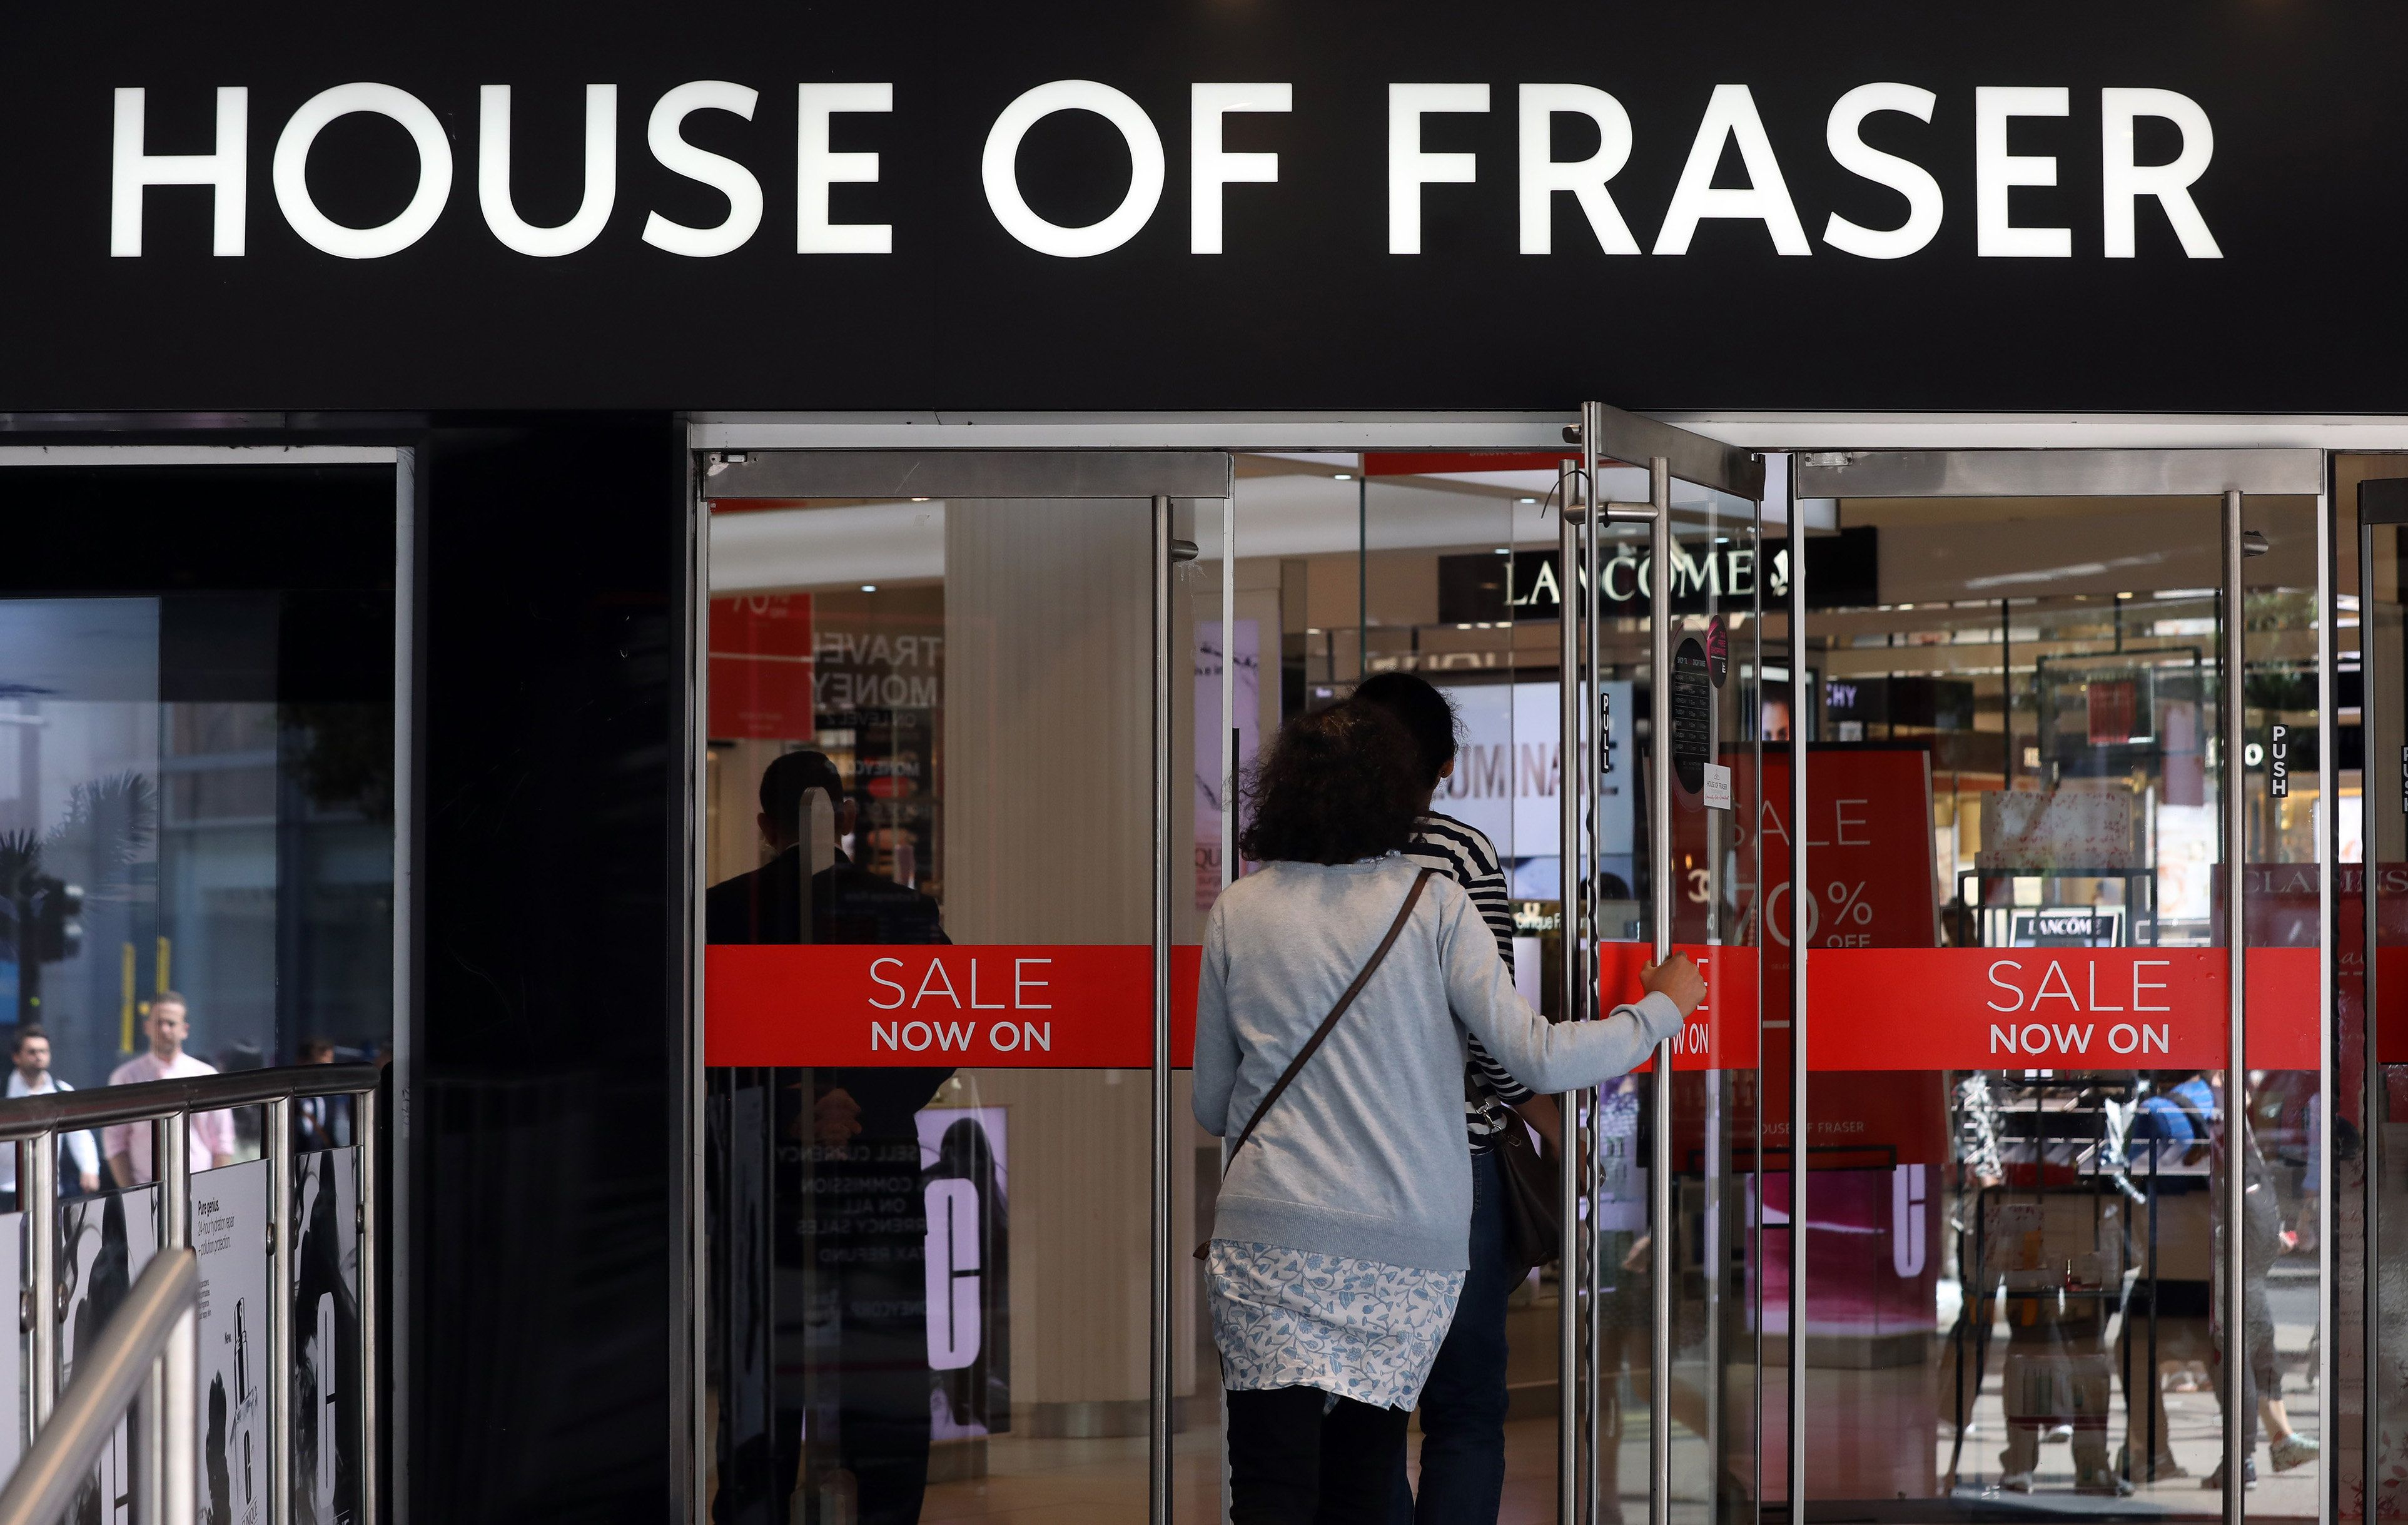 House of Fraser has cancelled all orders placed online